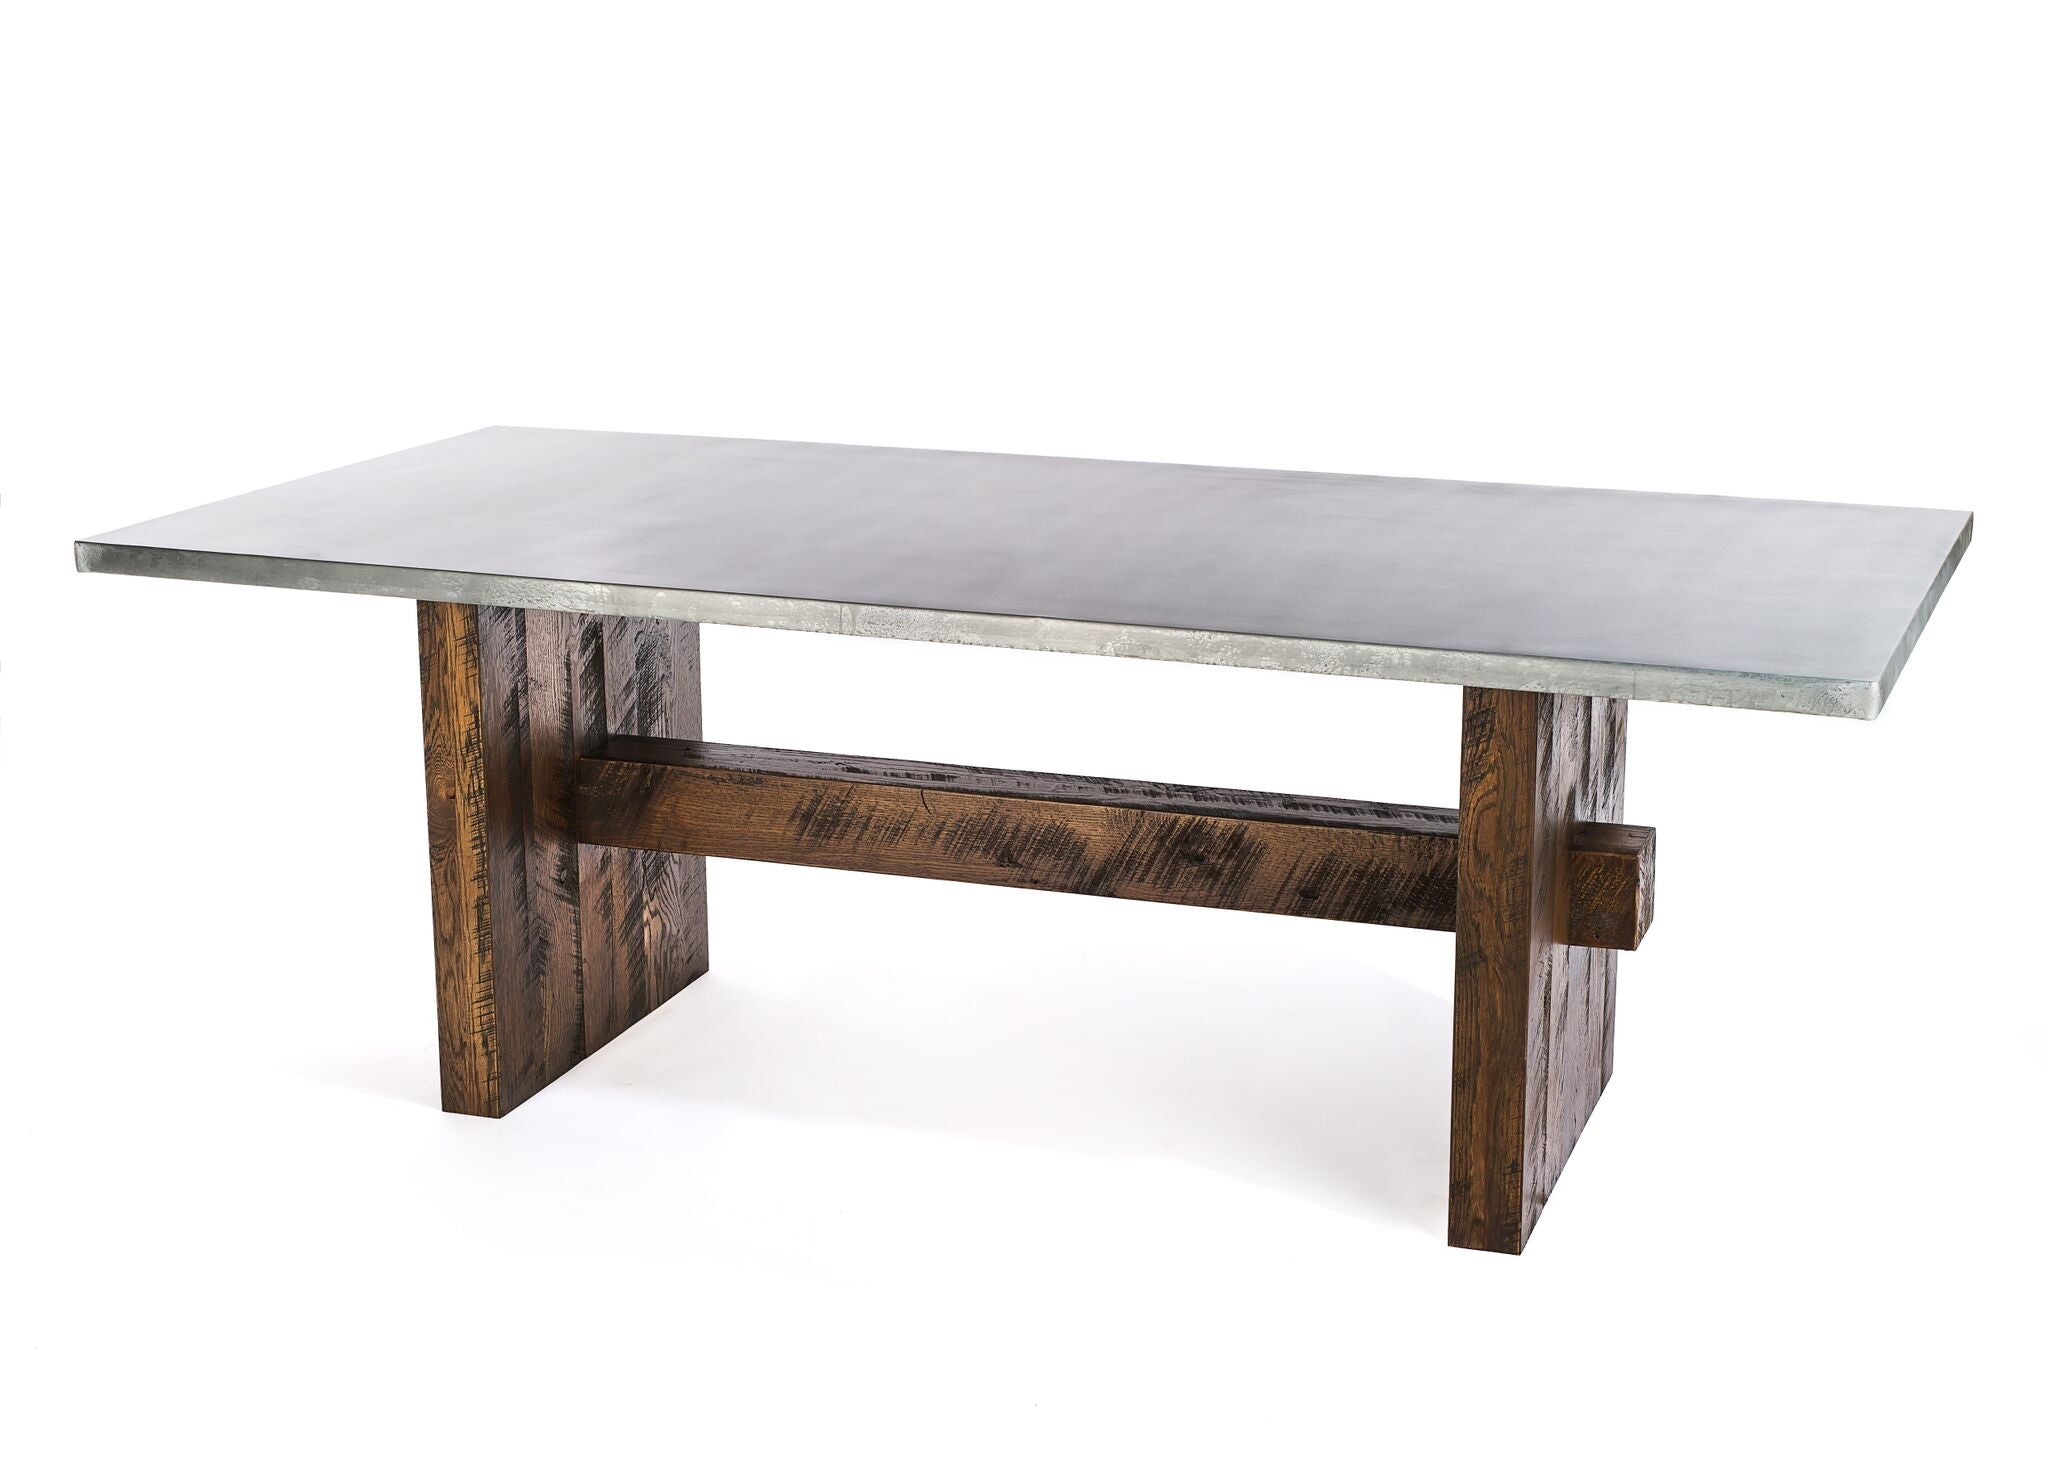 "Zinc Rectangular Table | Redford Trestle Table | CLASSIC | Natural Reclaimed Oak | CUSTOM SIZE 60""L 37""W 30""H 